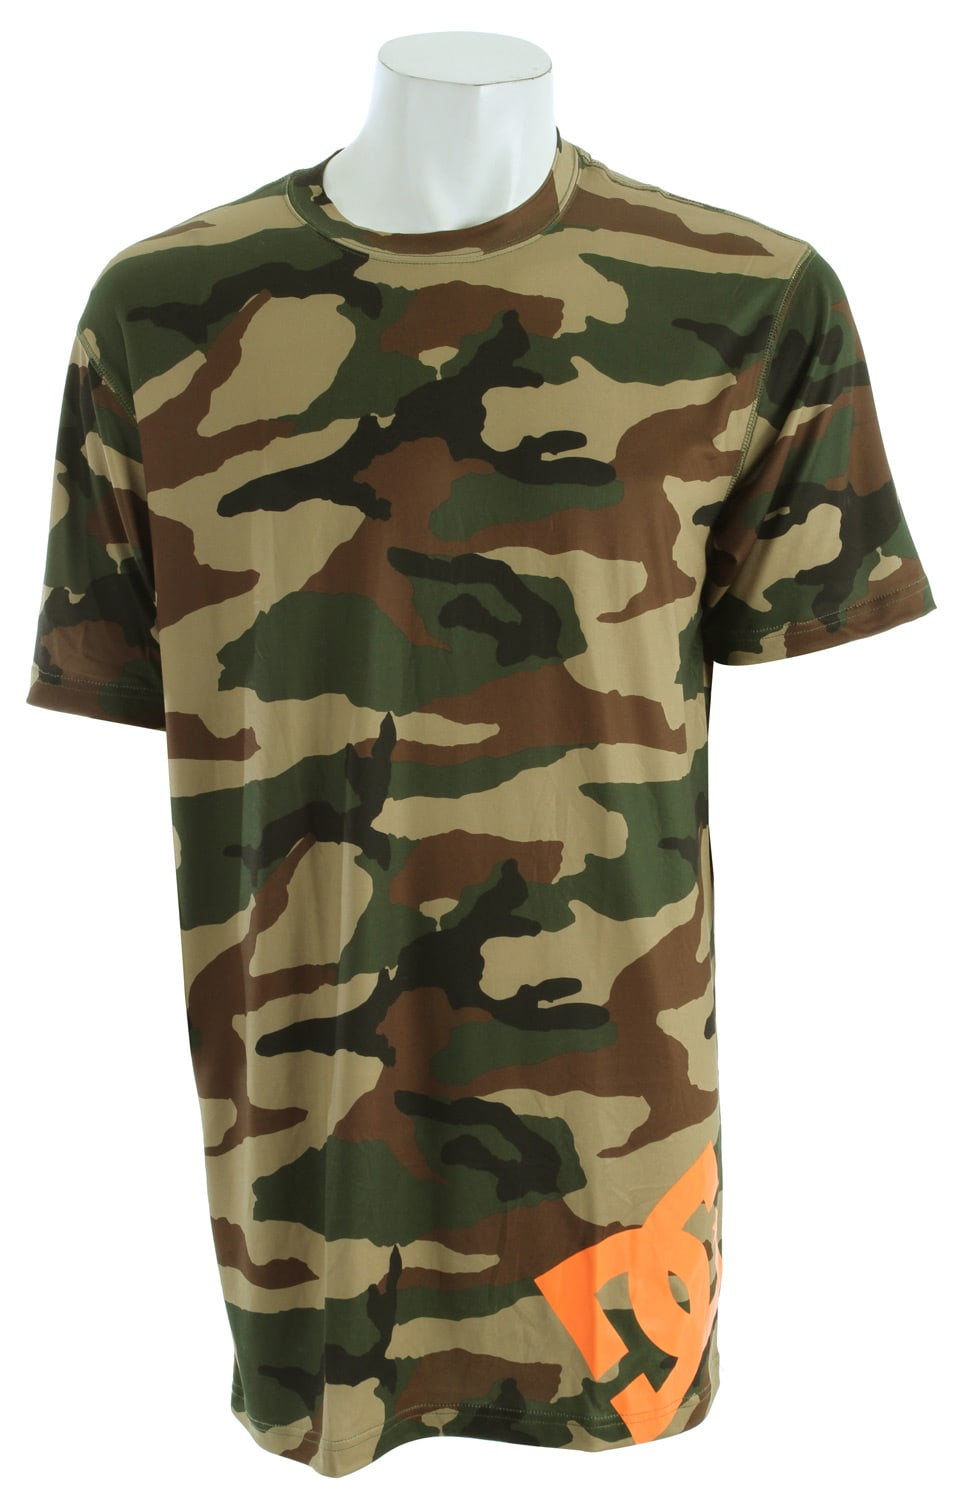 Shop for DC Aravis Baselayer Top Camo - Men's